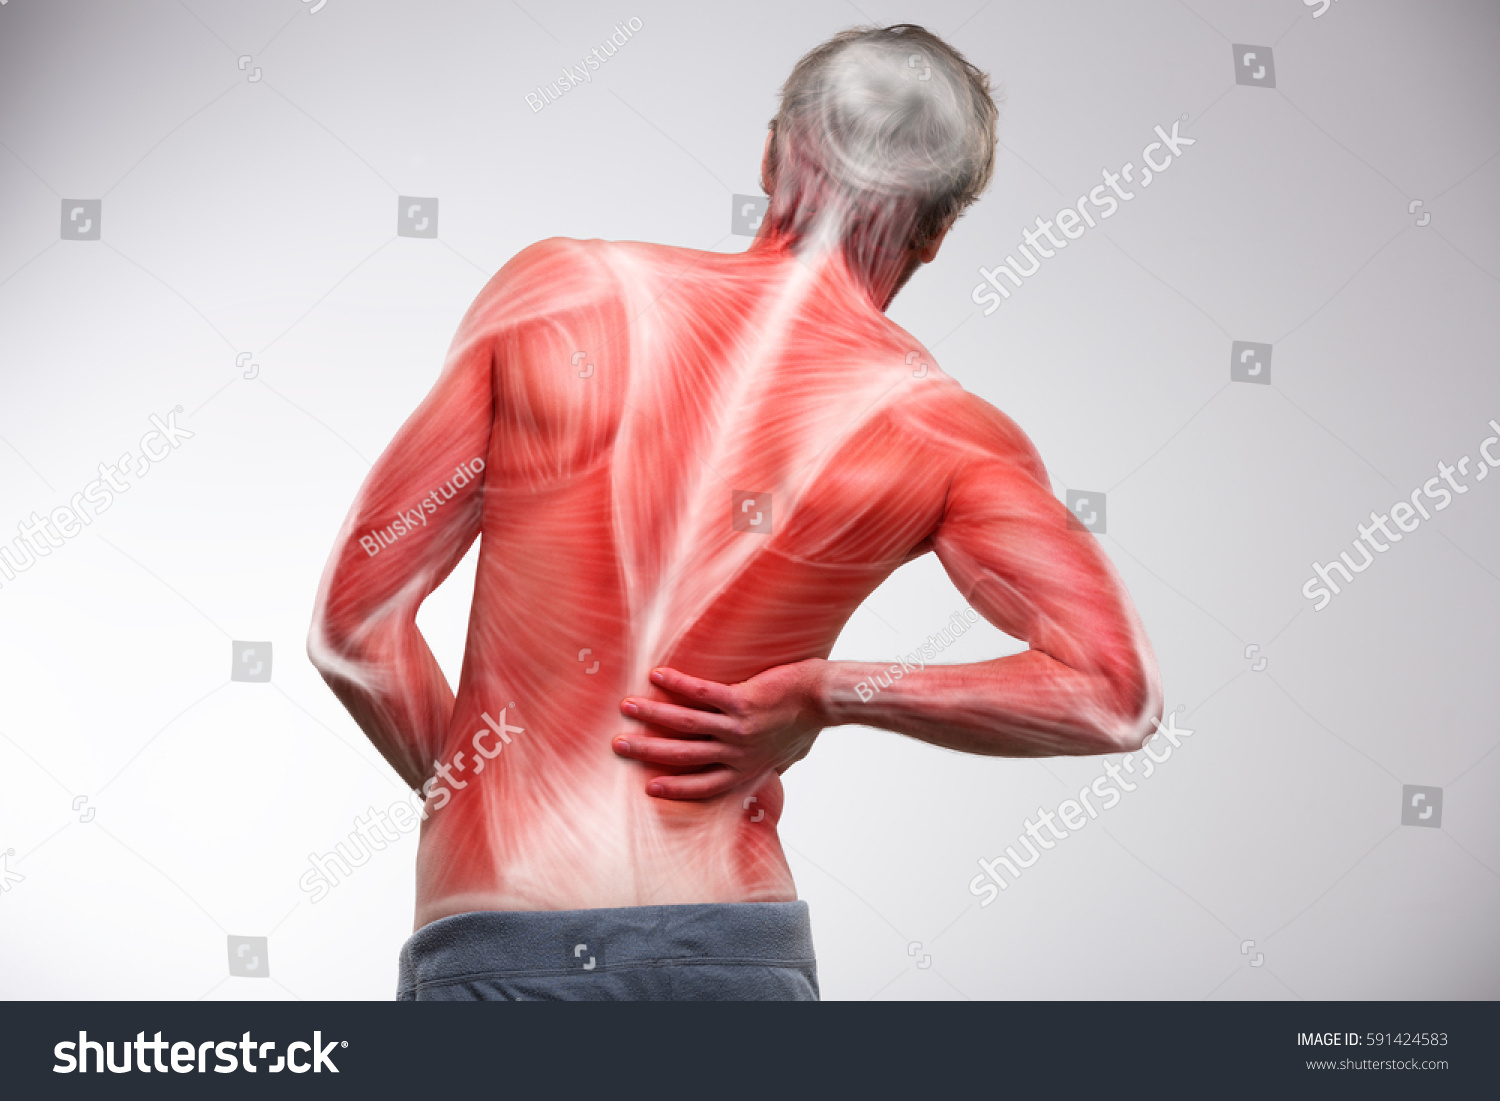 Image Result For Back Pain Muscle